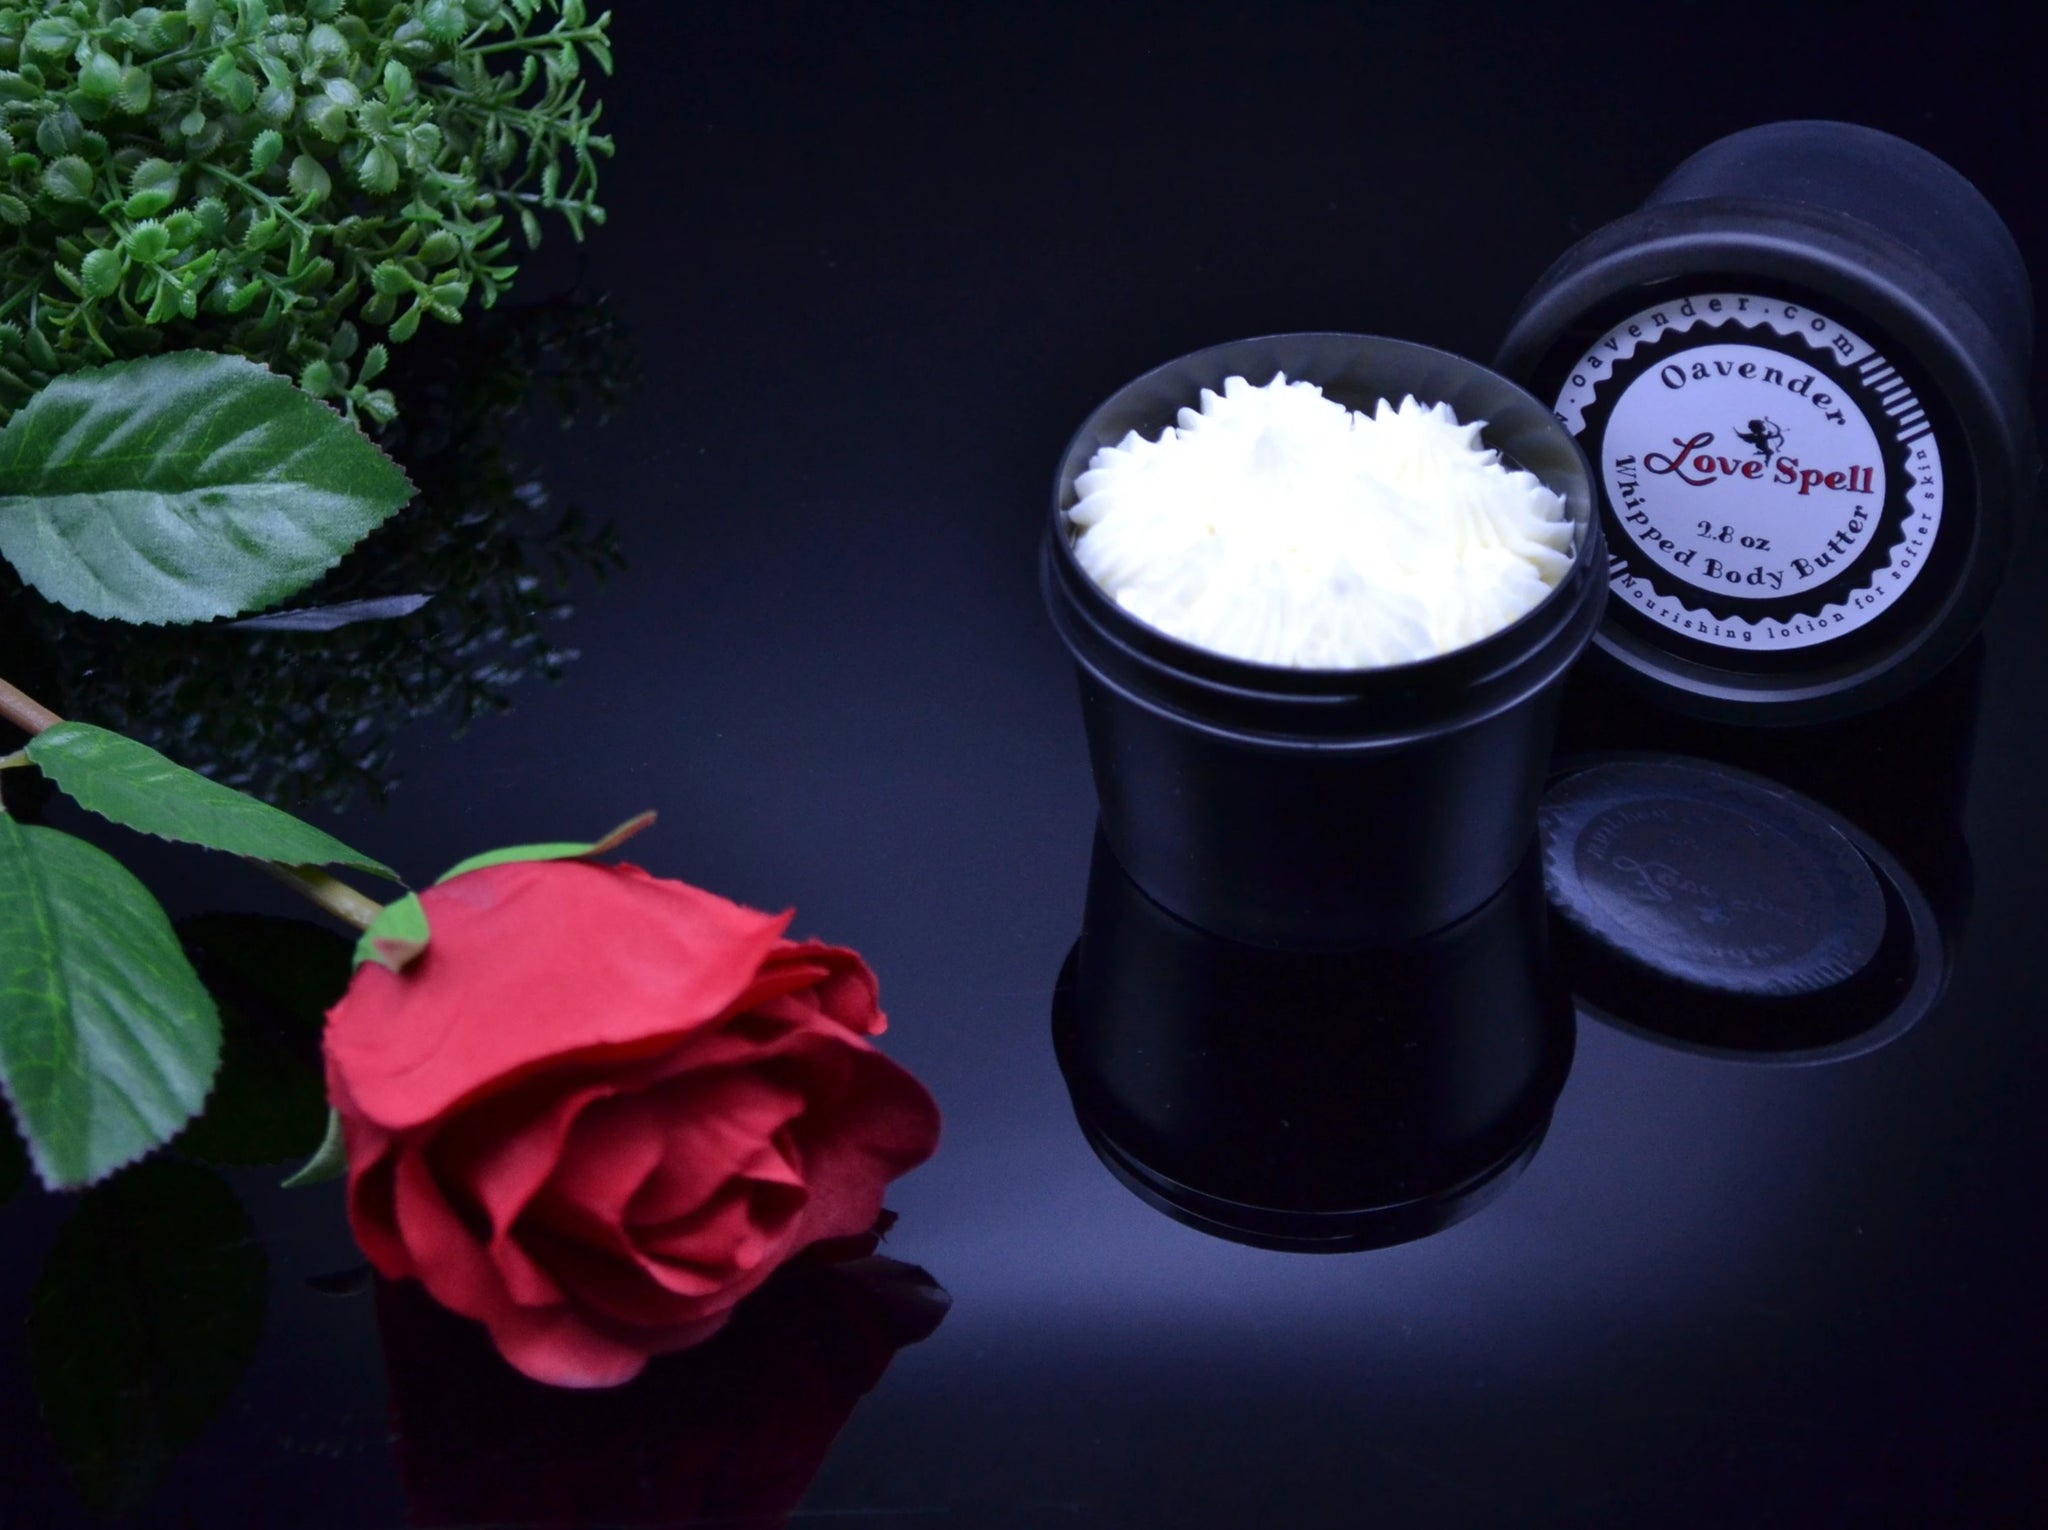 Lovespell Body Butter Moisturizer